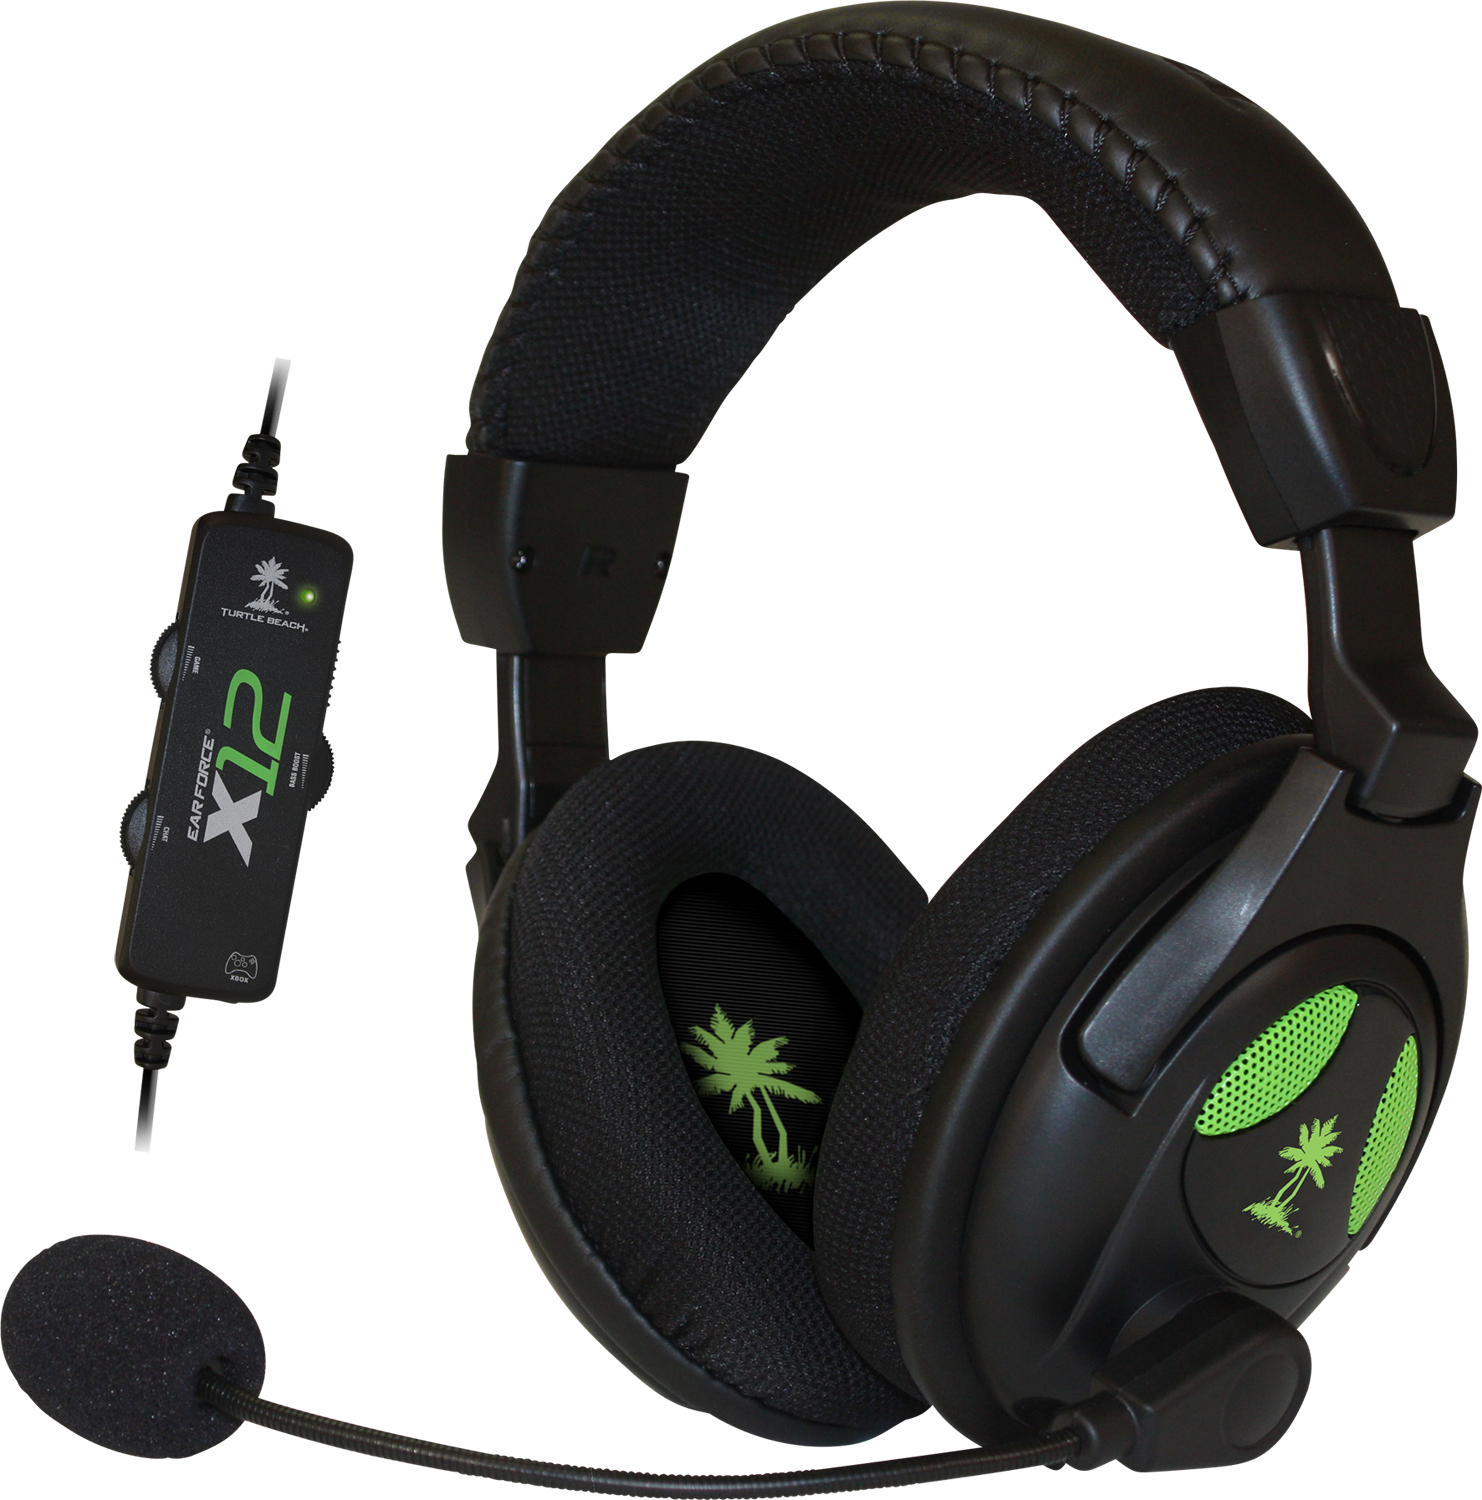 Läs mer om Turtle Beach Ear Force X12